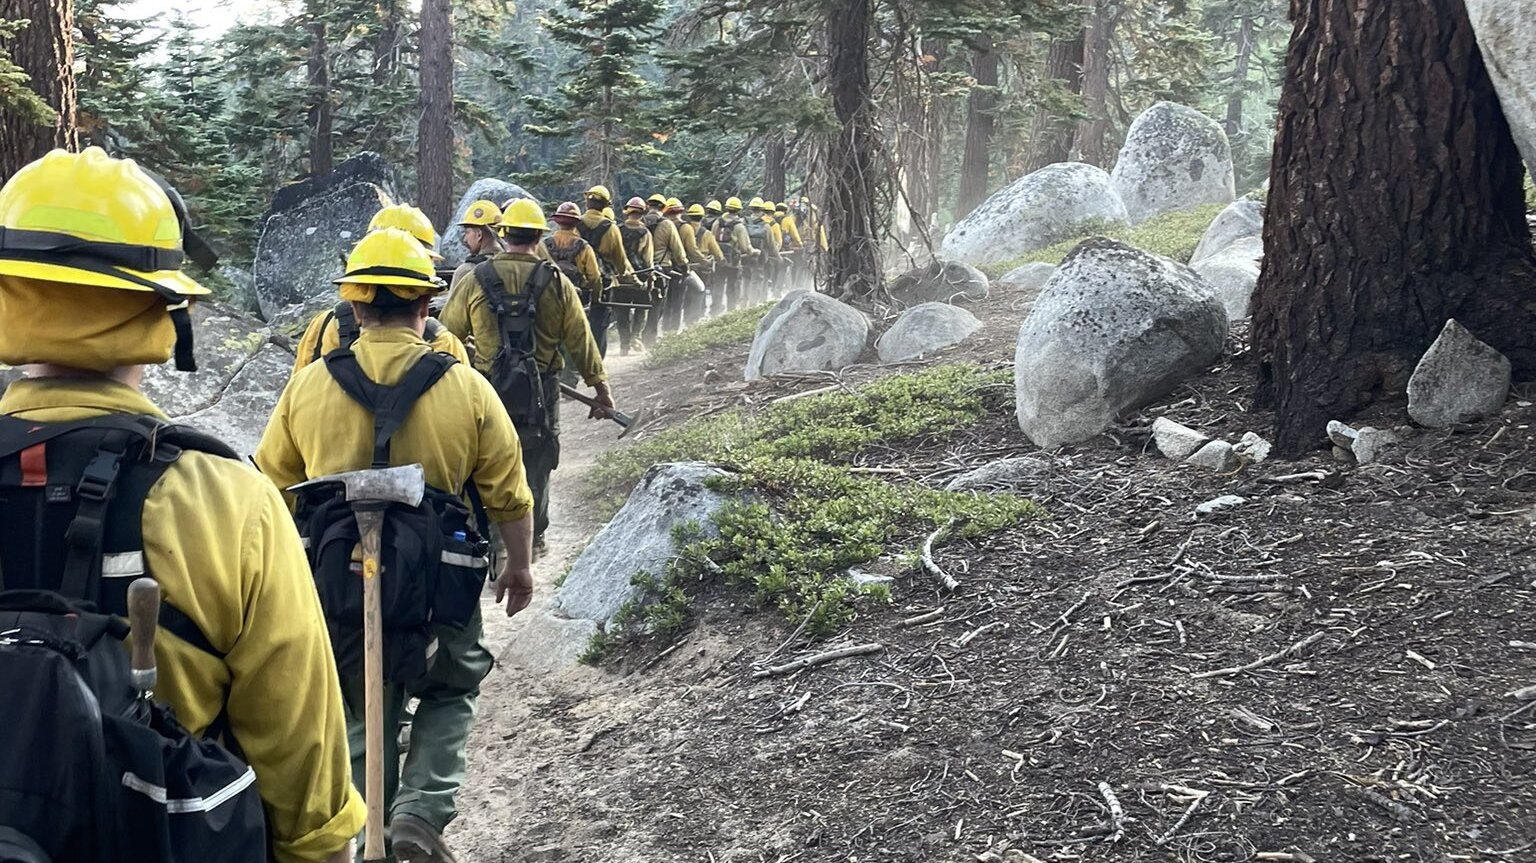 Crew at a portion of the Caldor fire in eastern California.